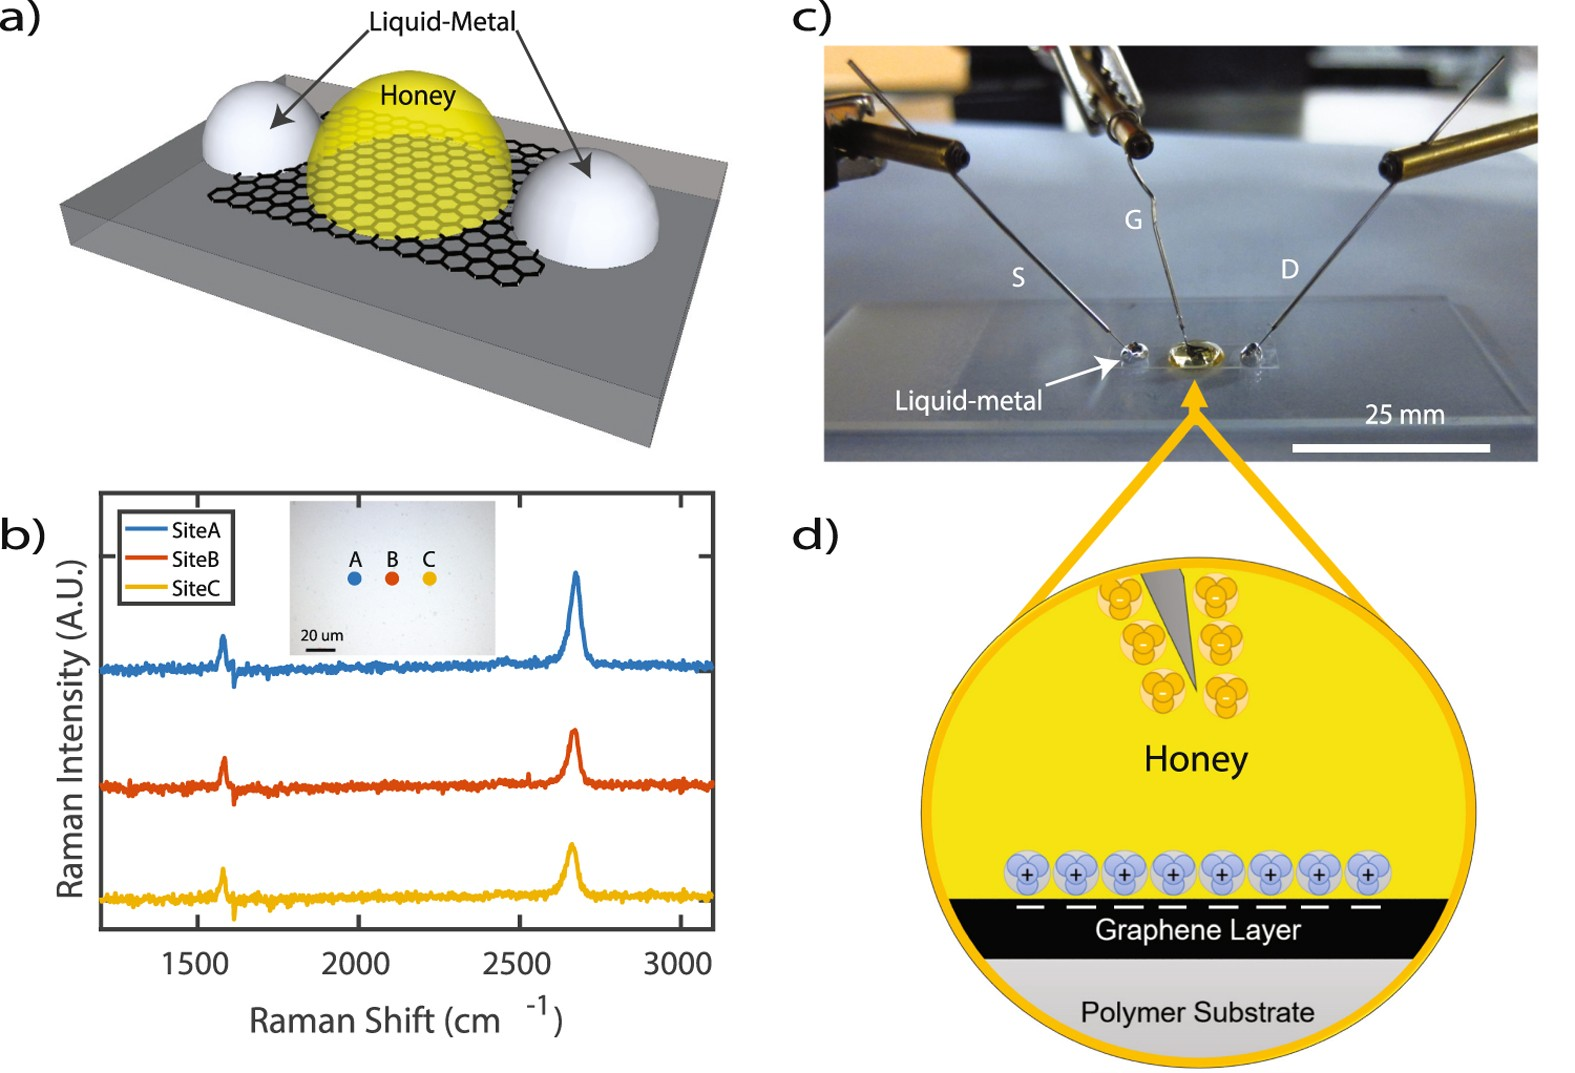 Rapid Fabrication Of Graphene Field Effect Transistors With Liquid Lcr Meter Electro Science Industries For Sale Electroniccircuits Metal Interconnects And Electrolytic Gate Dielectric Made Honey Scientific Reports